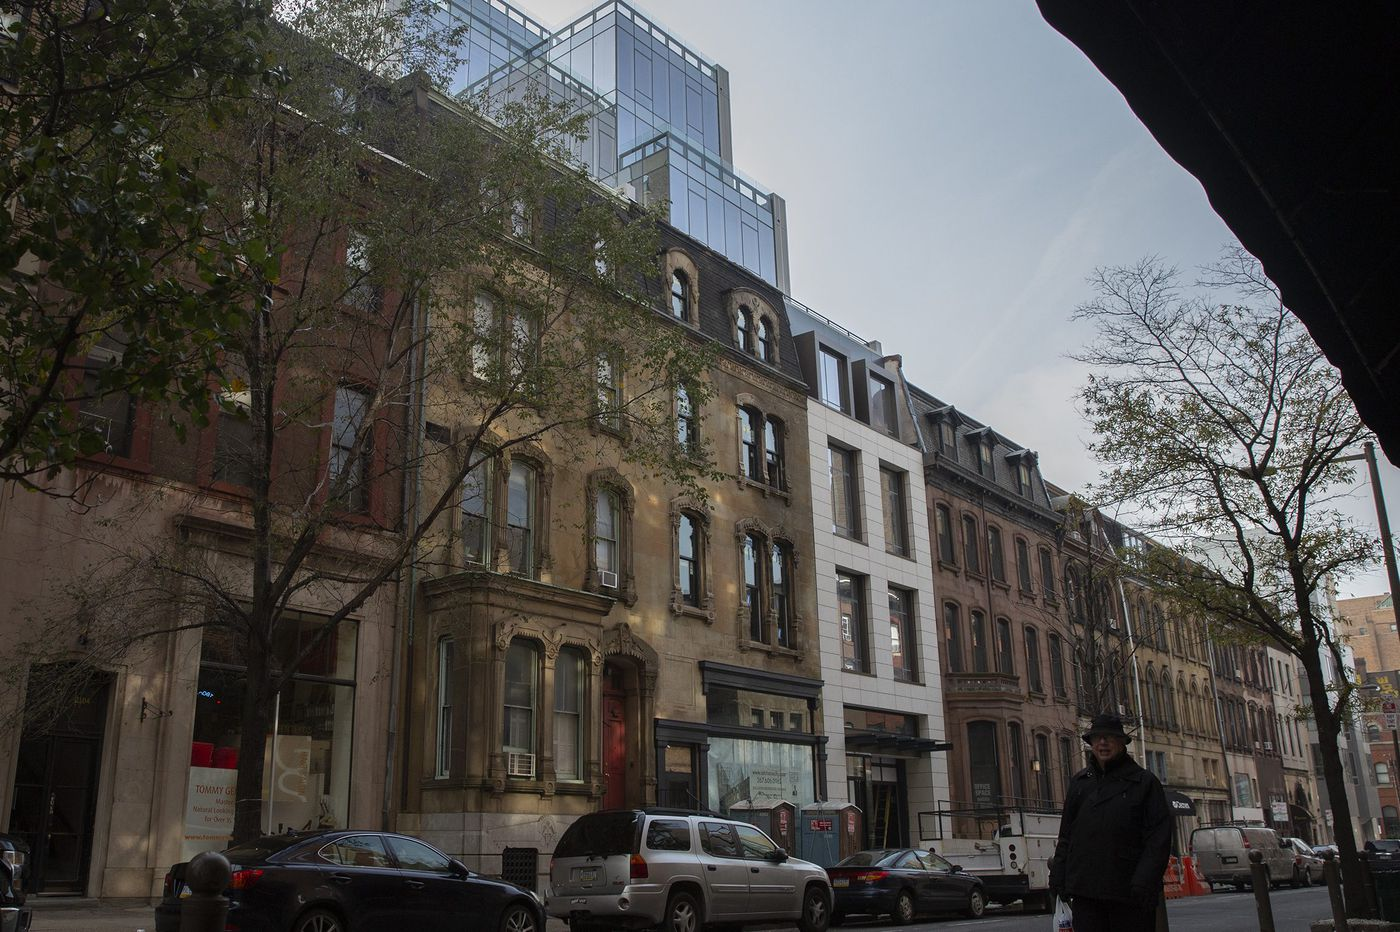 The new Frankenstein condos of Rittenhouse Square